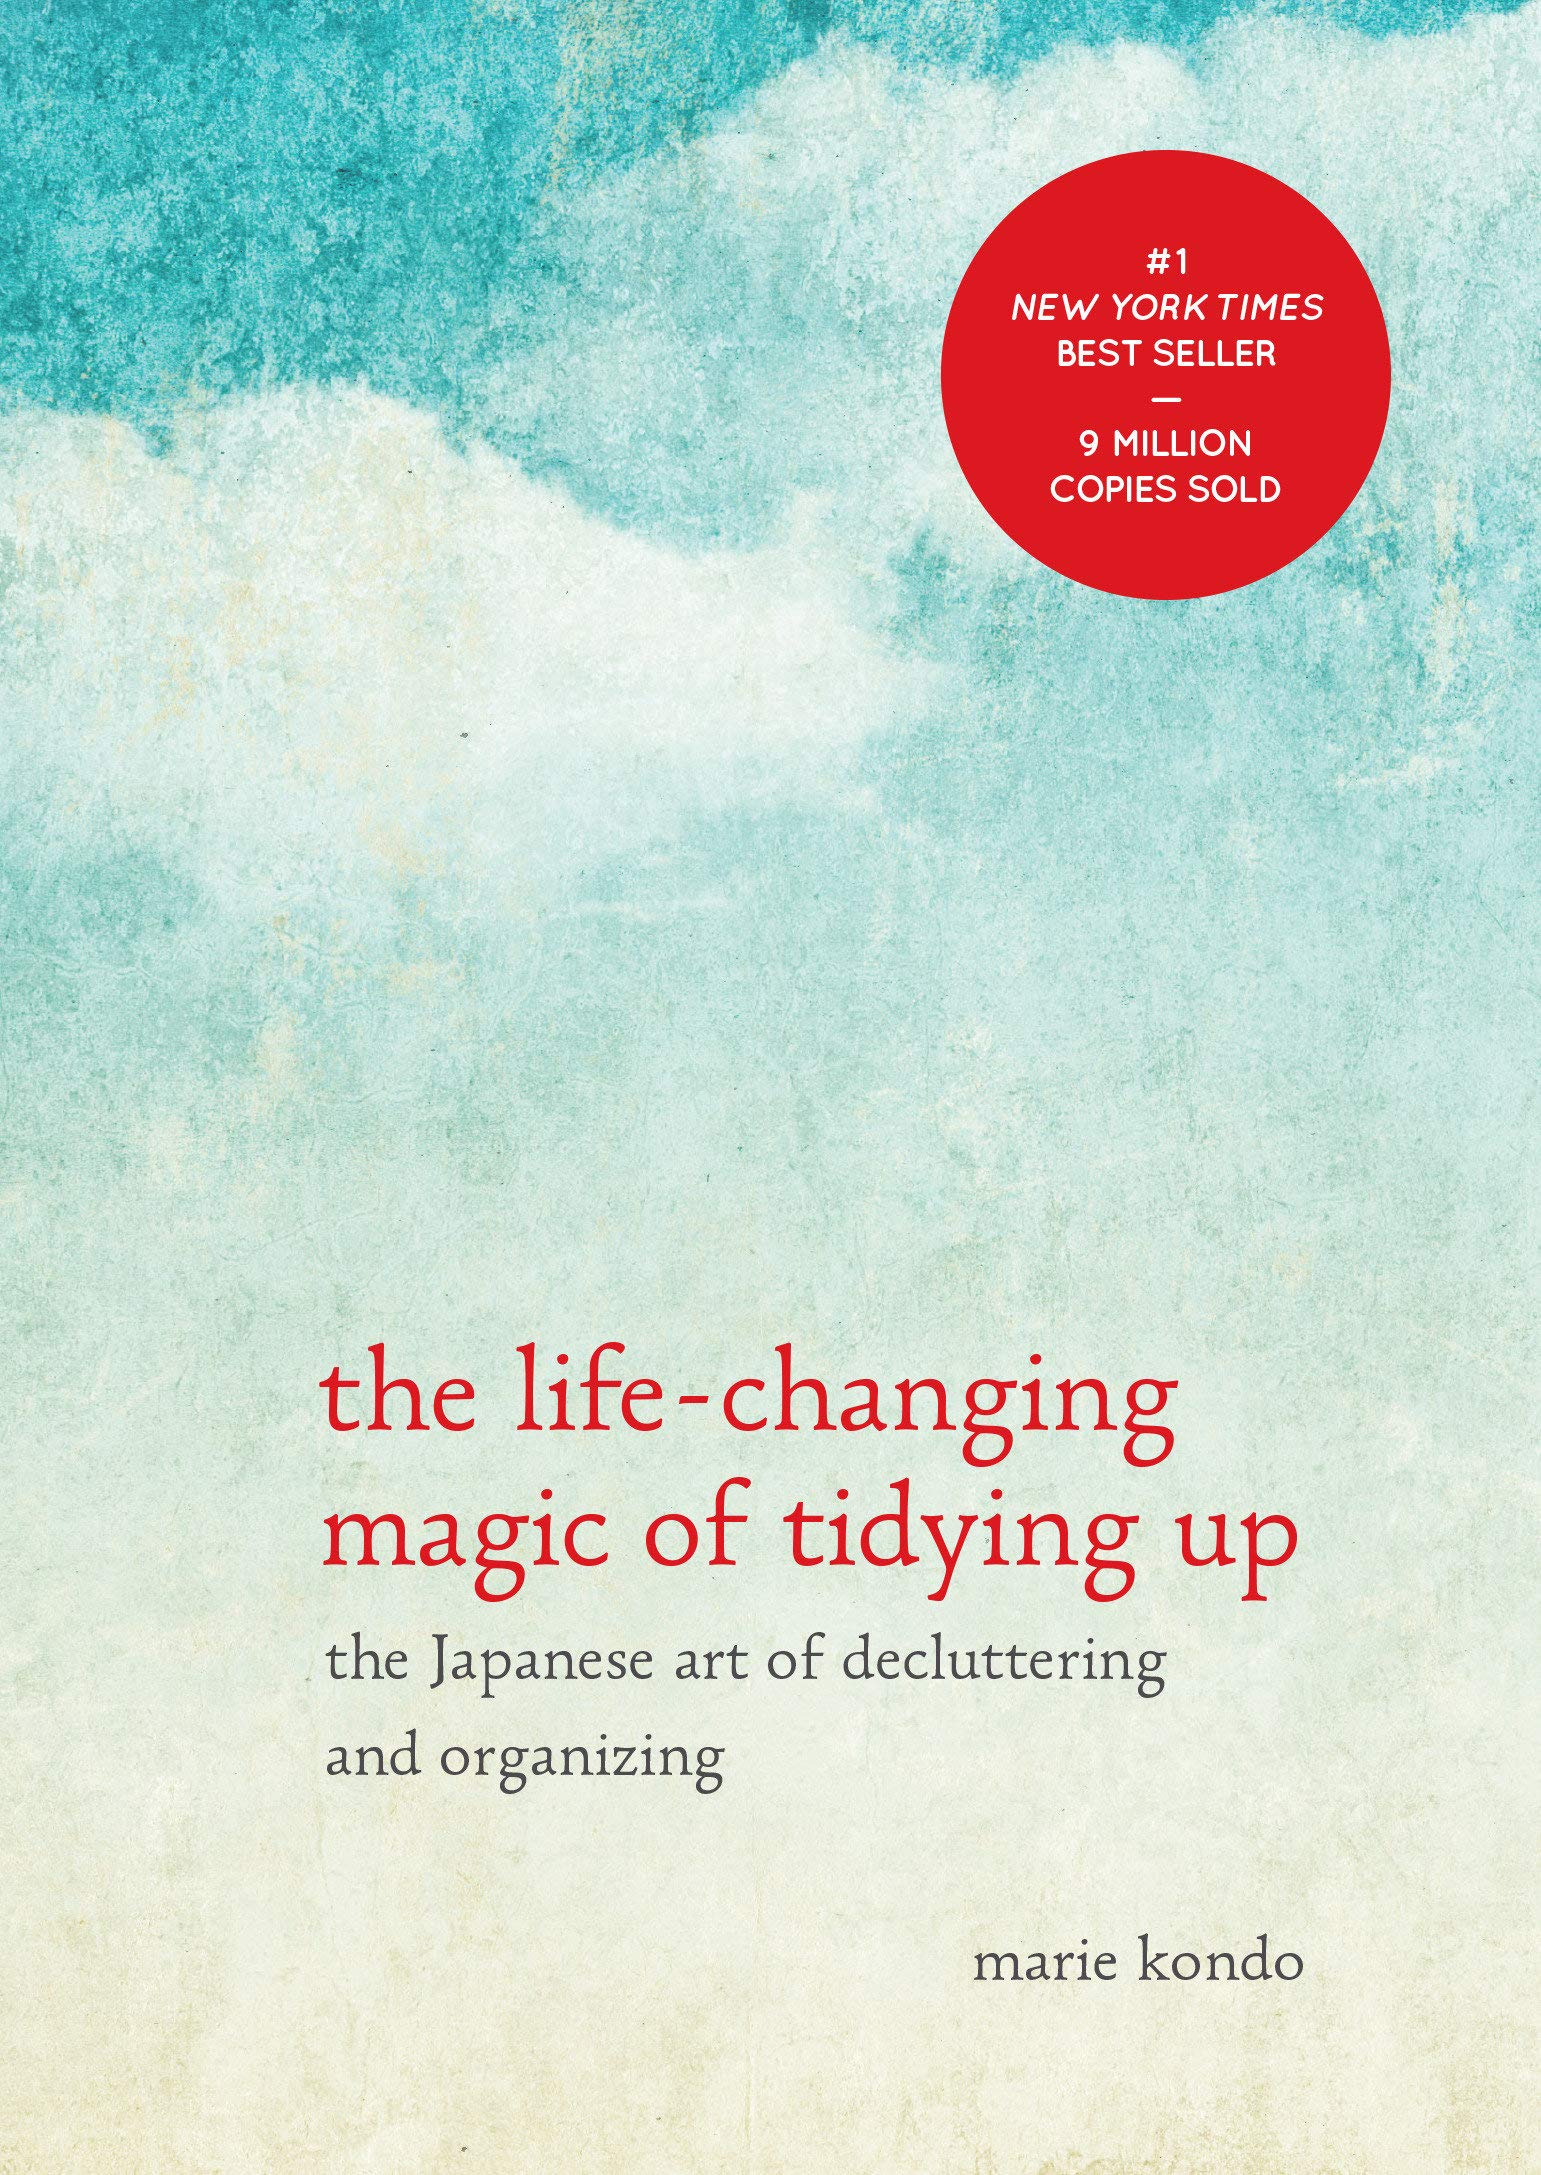 Amazon.com: The Life-Changing Magic of Tidying Up: The Japanese Art of  Decluttering and Organizing (0710308291511): Marie Kondō: Books